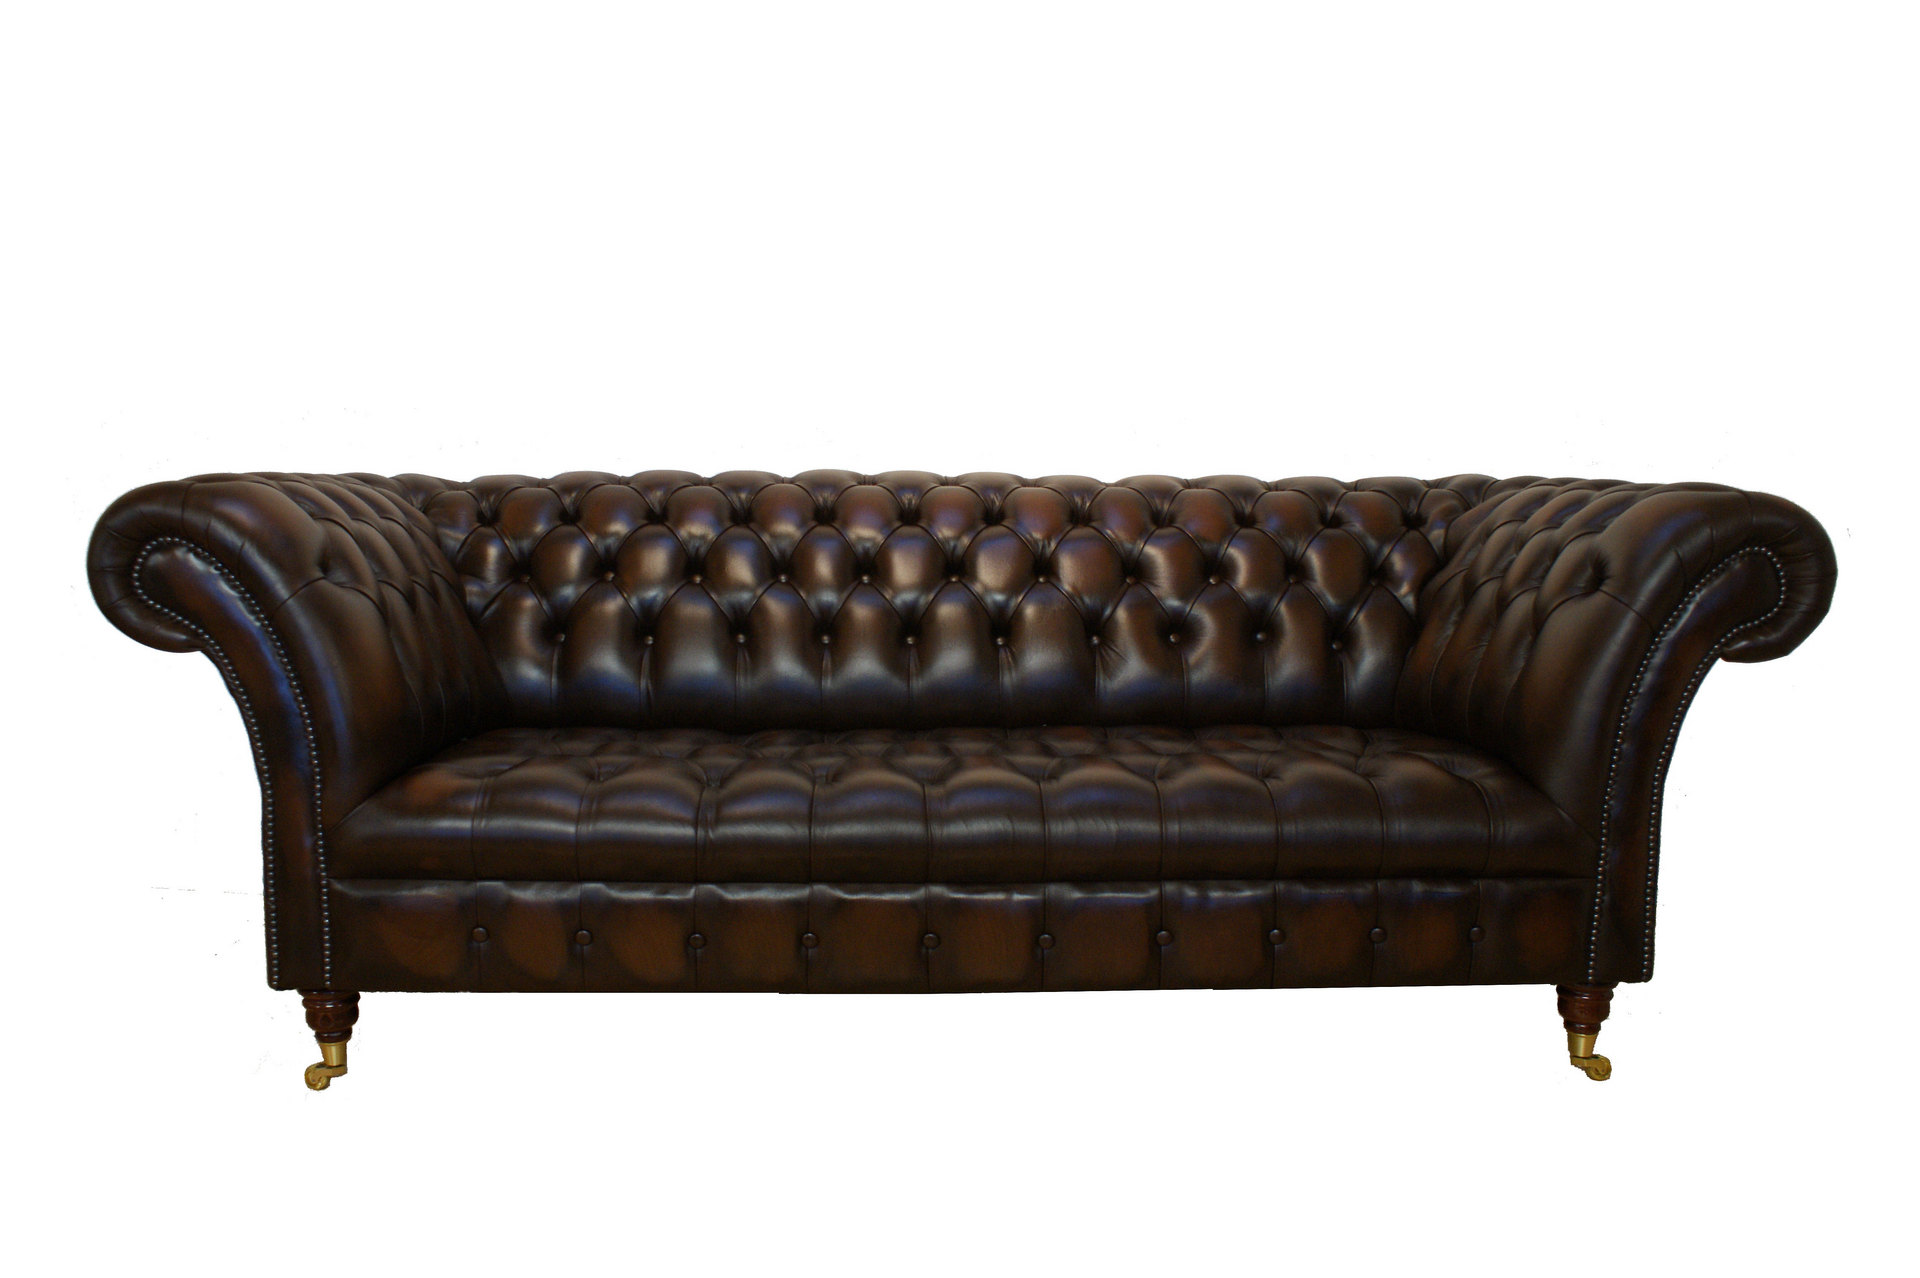 Chesterfield sofas january 2011 for Furniture leather sofa